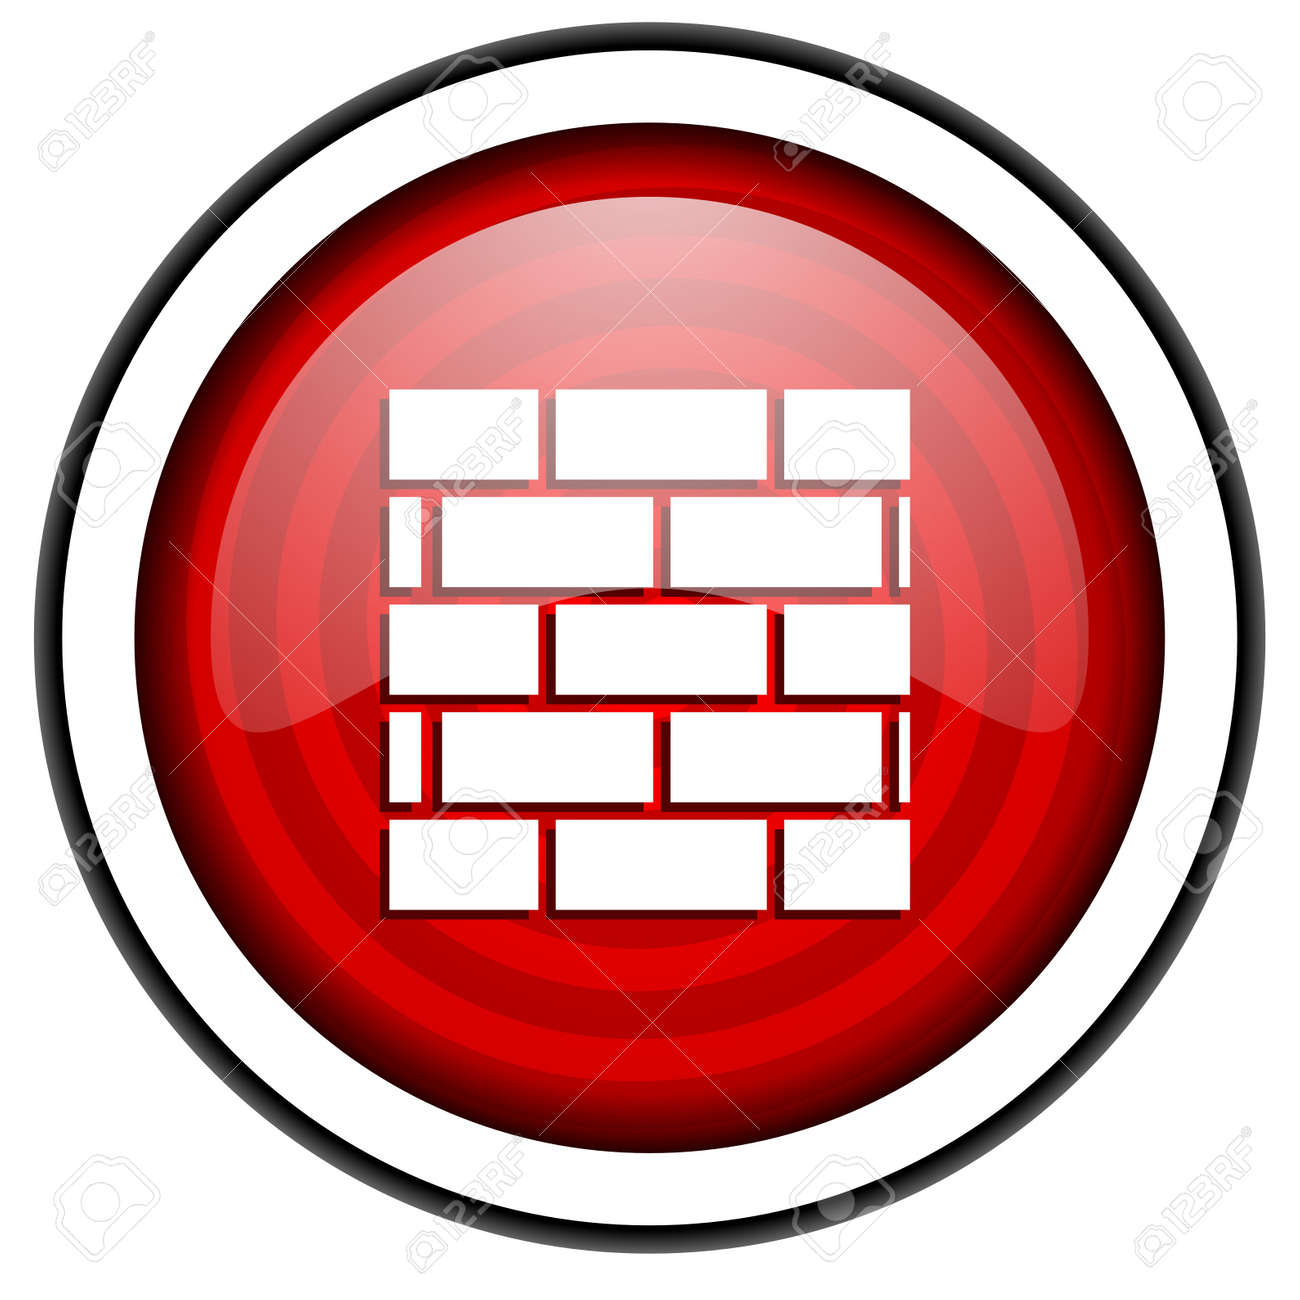 firewall red glossy icon isolated on white background Stock Photo - 16975128